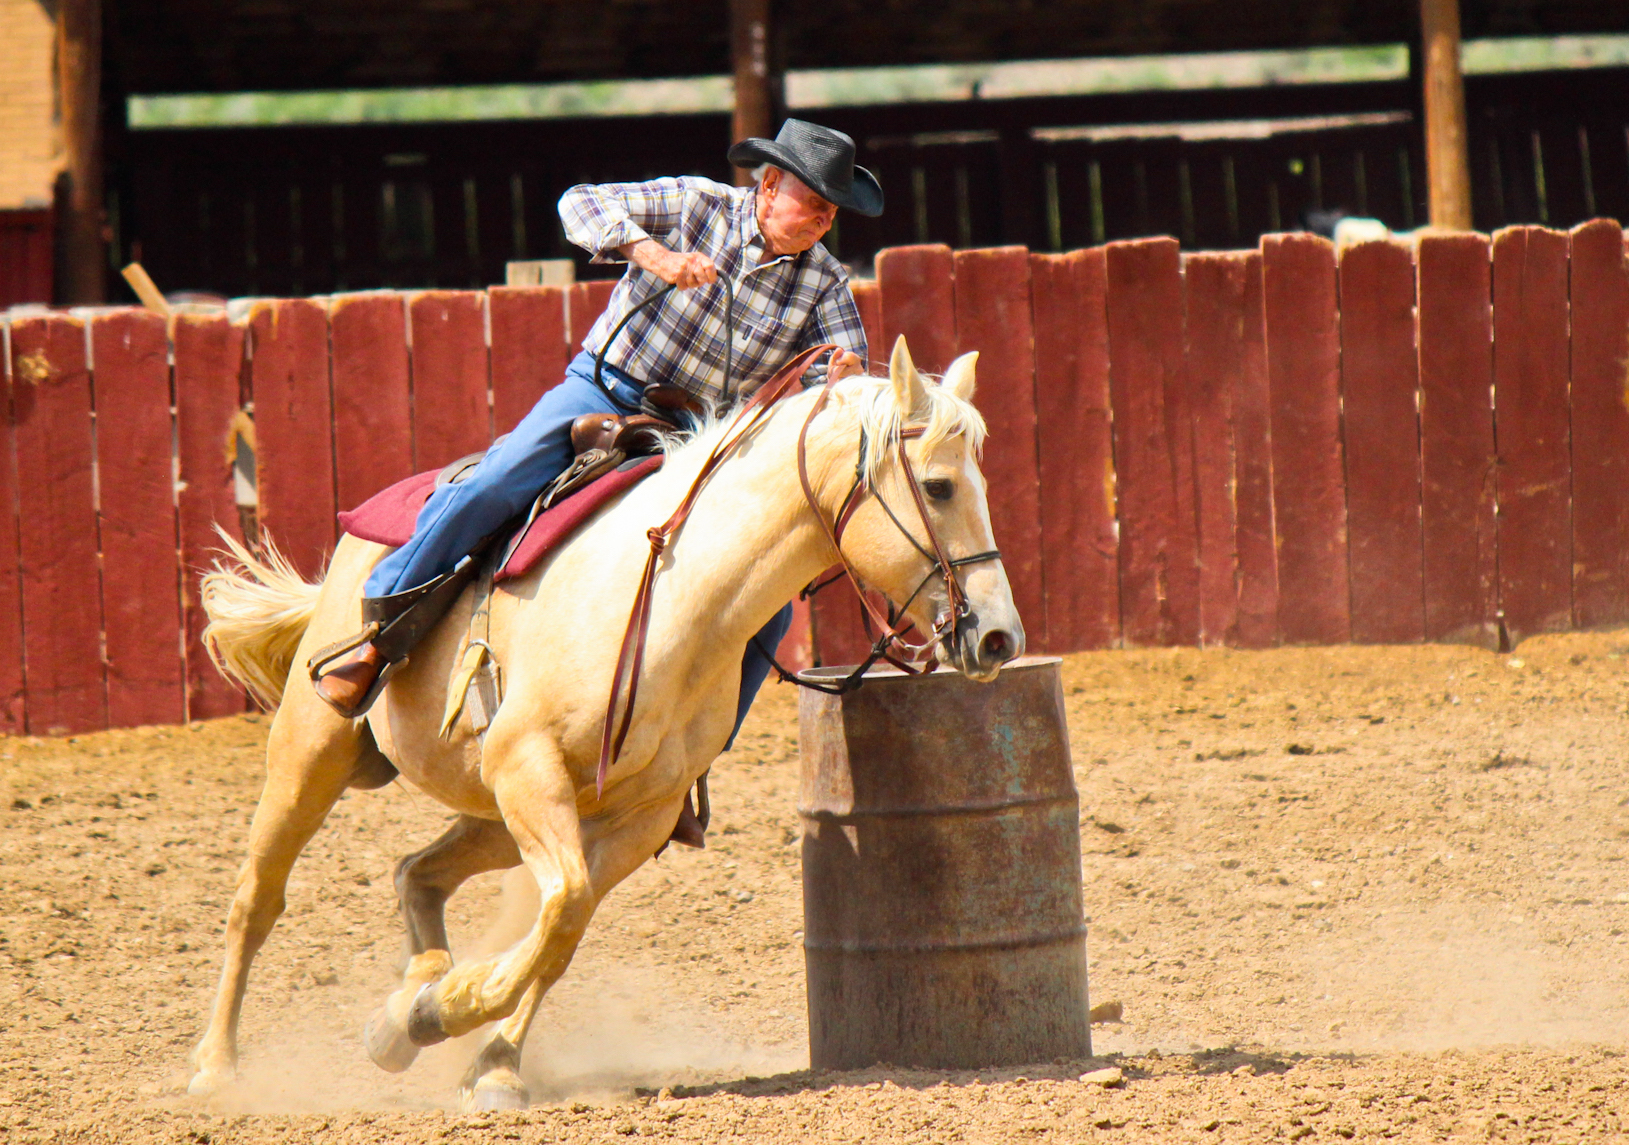 Carl Freeman still enjoyed barrel racing at age 98. Today, the 104-year-old serves as a temple worker in the St. George Utah Temple.